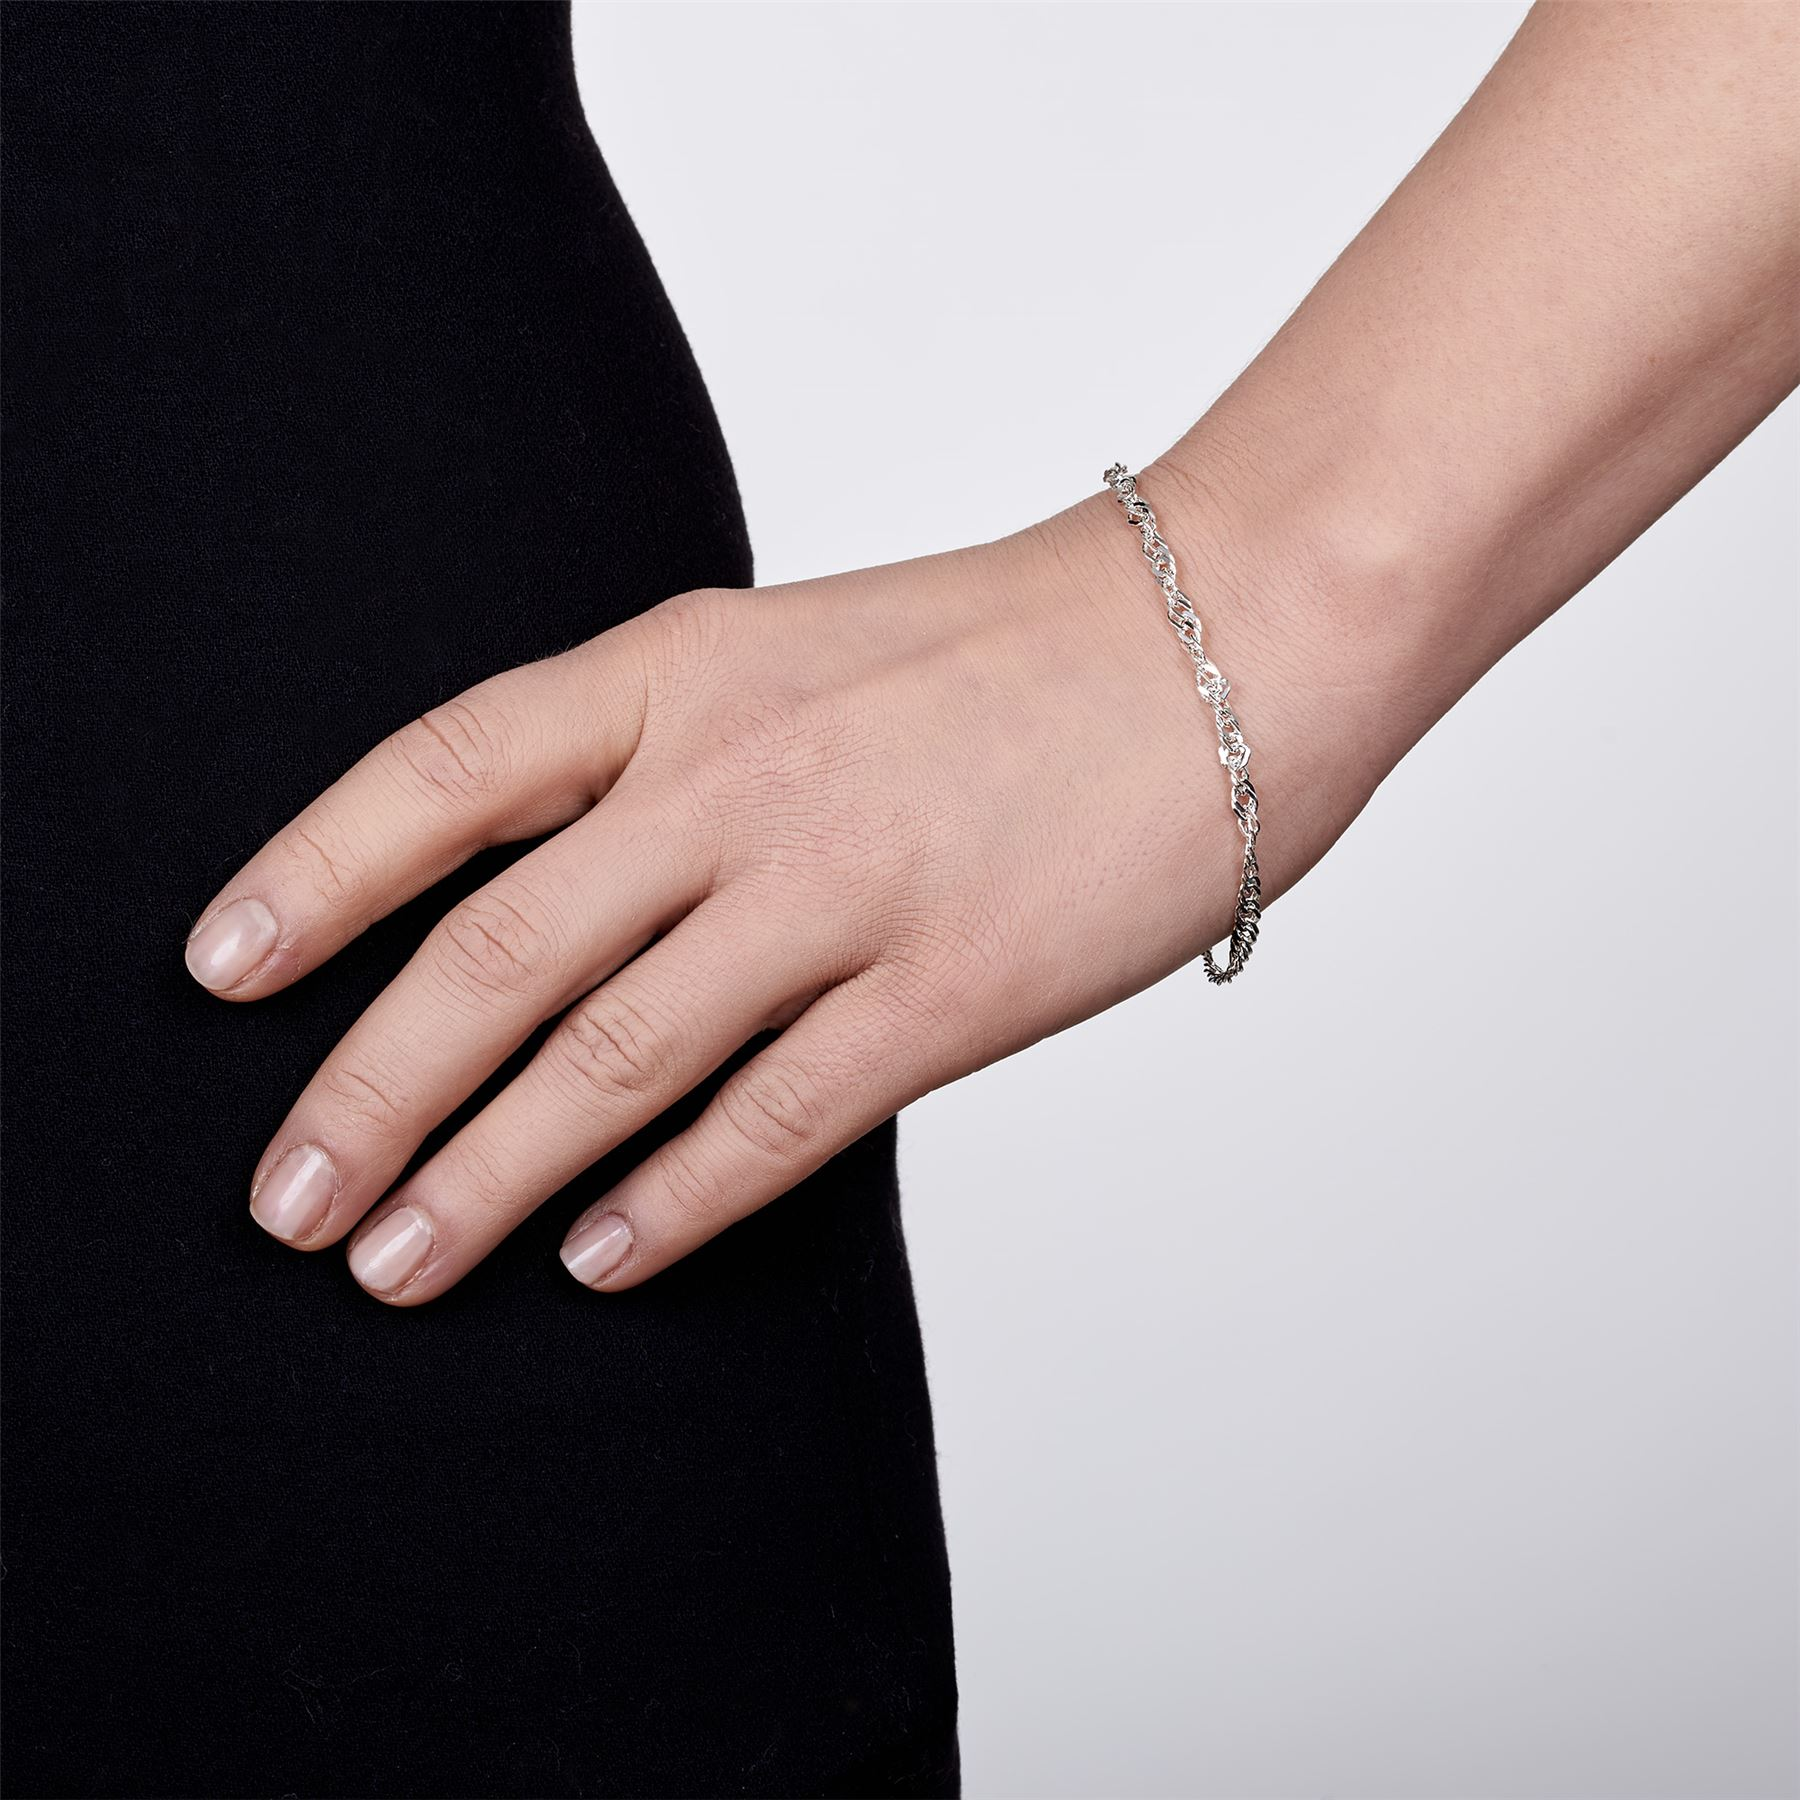 Amberta-Genuine-Real-925-Sterling-Silver-Bracelet-Bangle-Chain-Made-in-Italy thumbnail 90